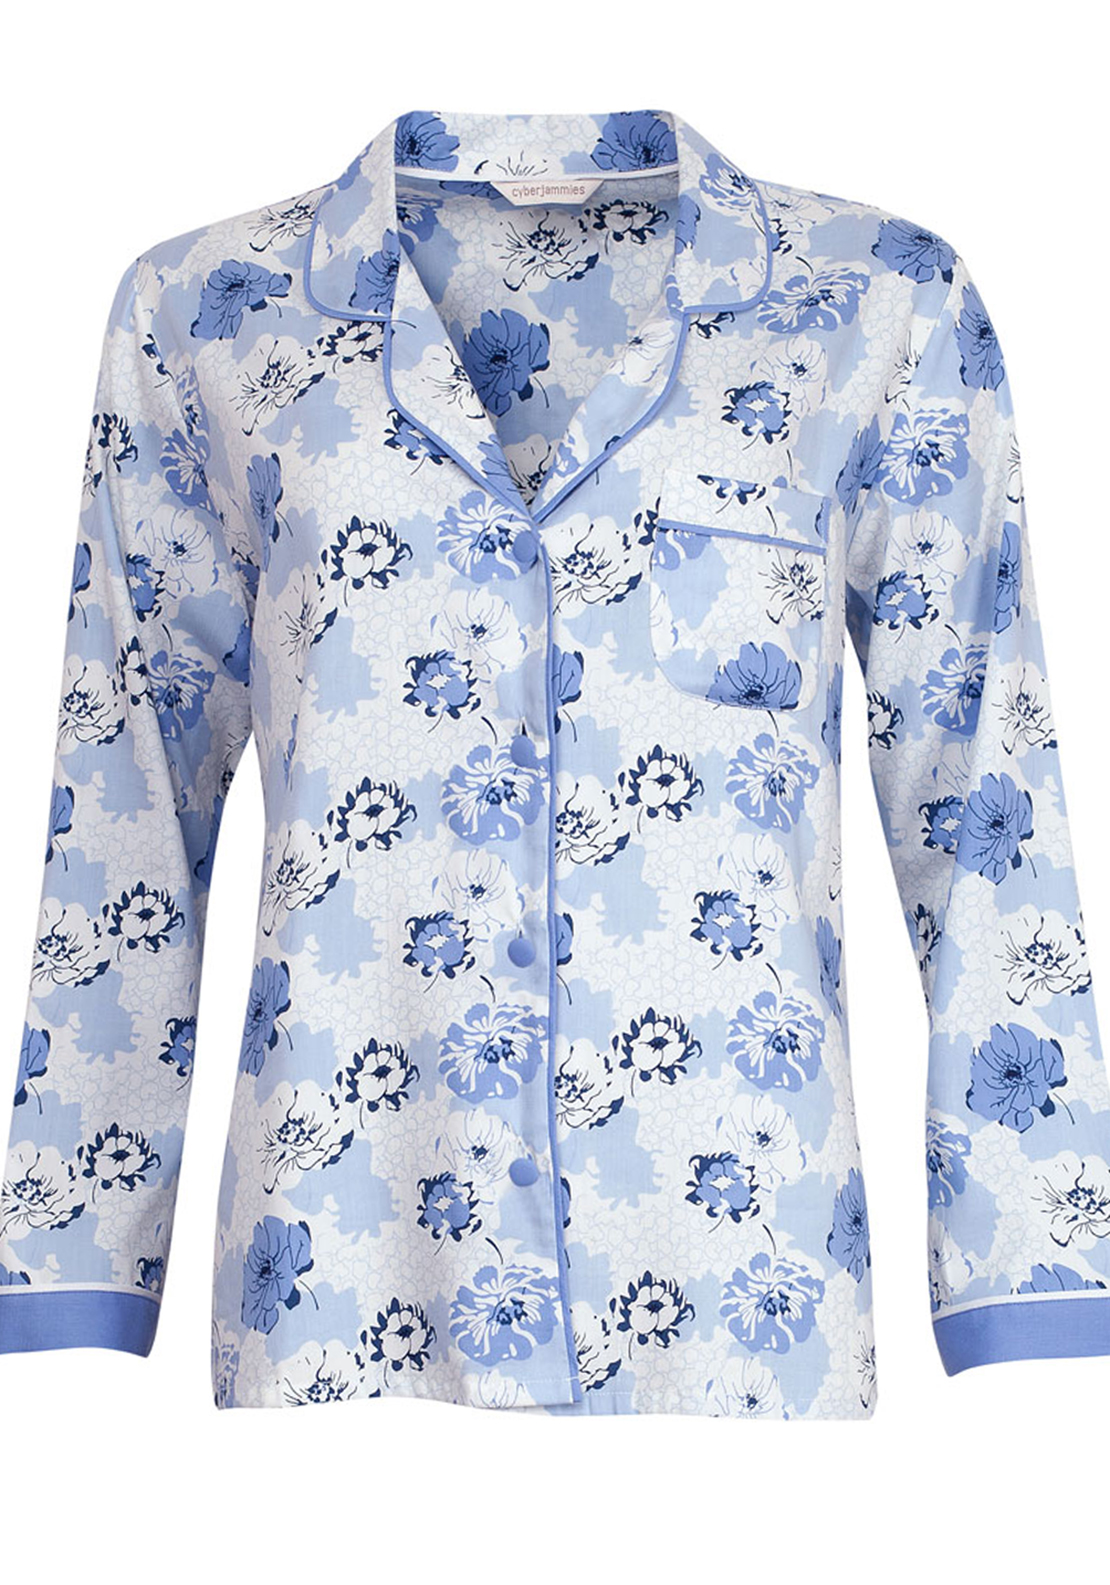 Cyberjammies Porcelain Doll Floral Print Pyjama Top, Blue